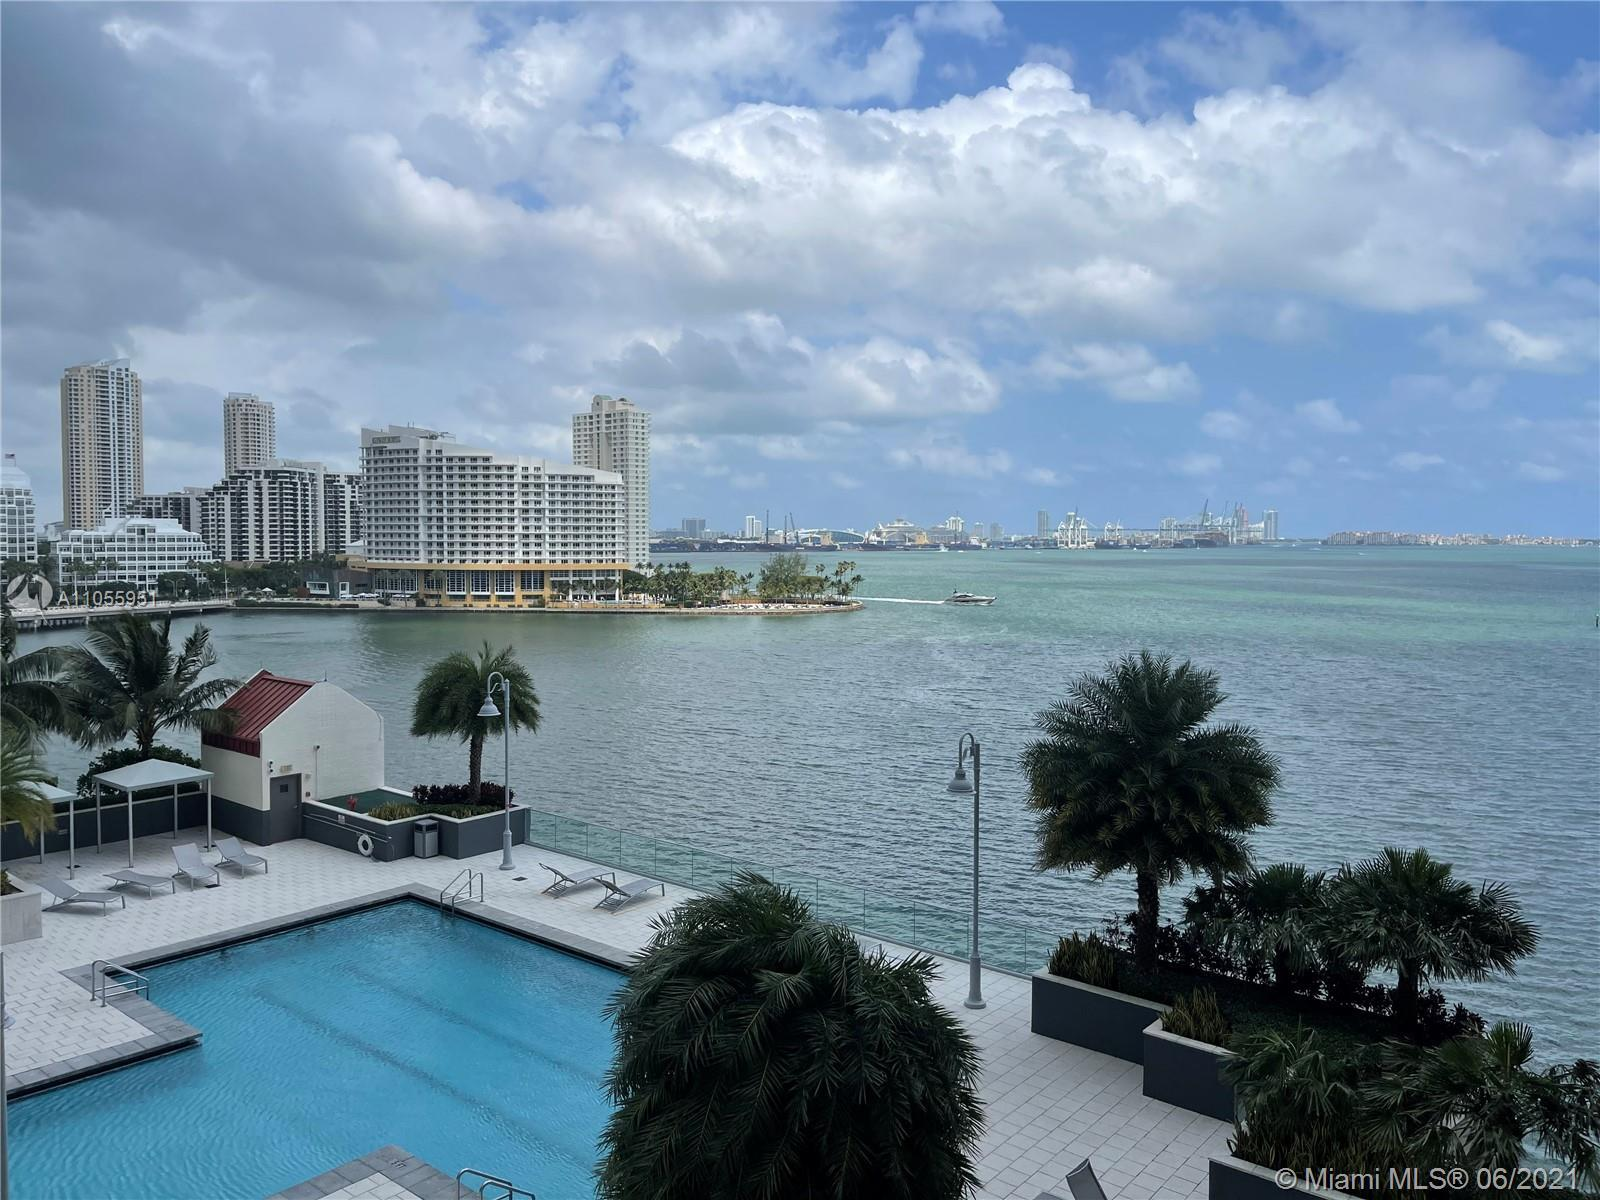 SPACIOUS 1 BED/1BATH WITH LARGE BALCONY WITH BISCAYNE BAY AND BRICKELL KEY SKYLINE. THIS UNIT FEATUR